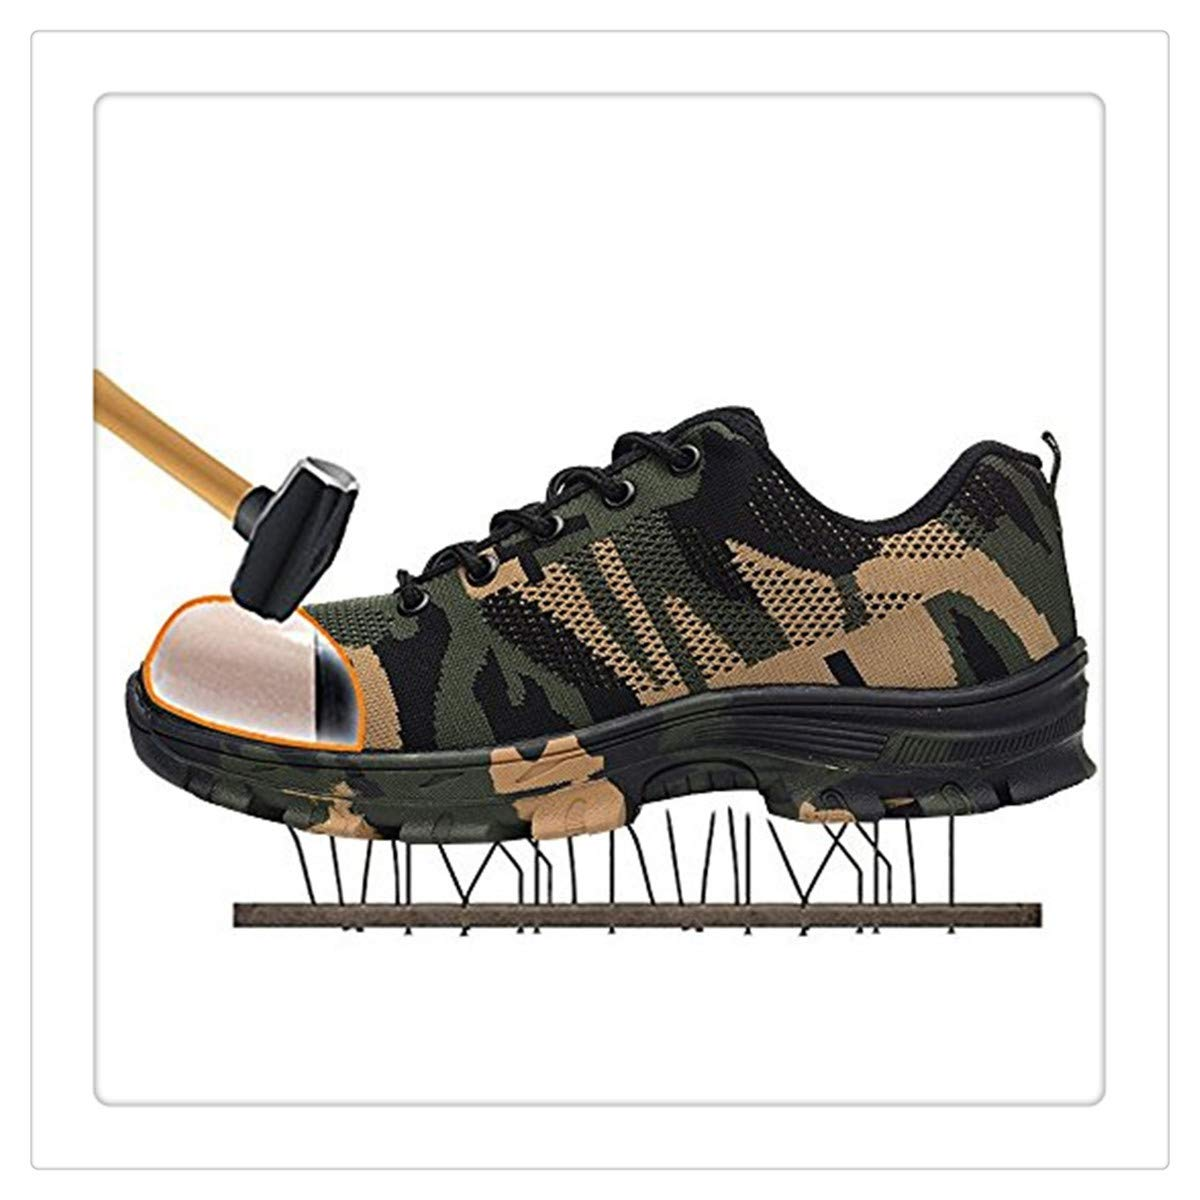 Uciquzhon Camouflage Steel Toe Shoes Men Work Boots Breathable Work Safety Shoes